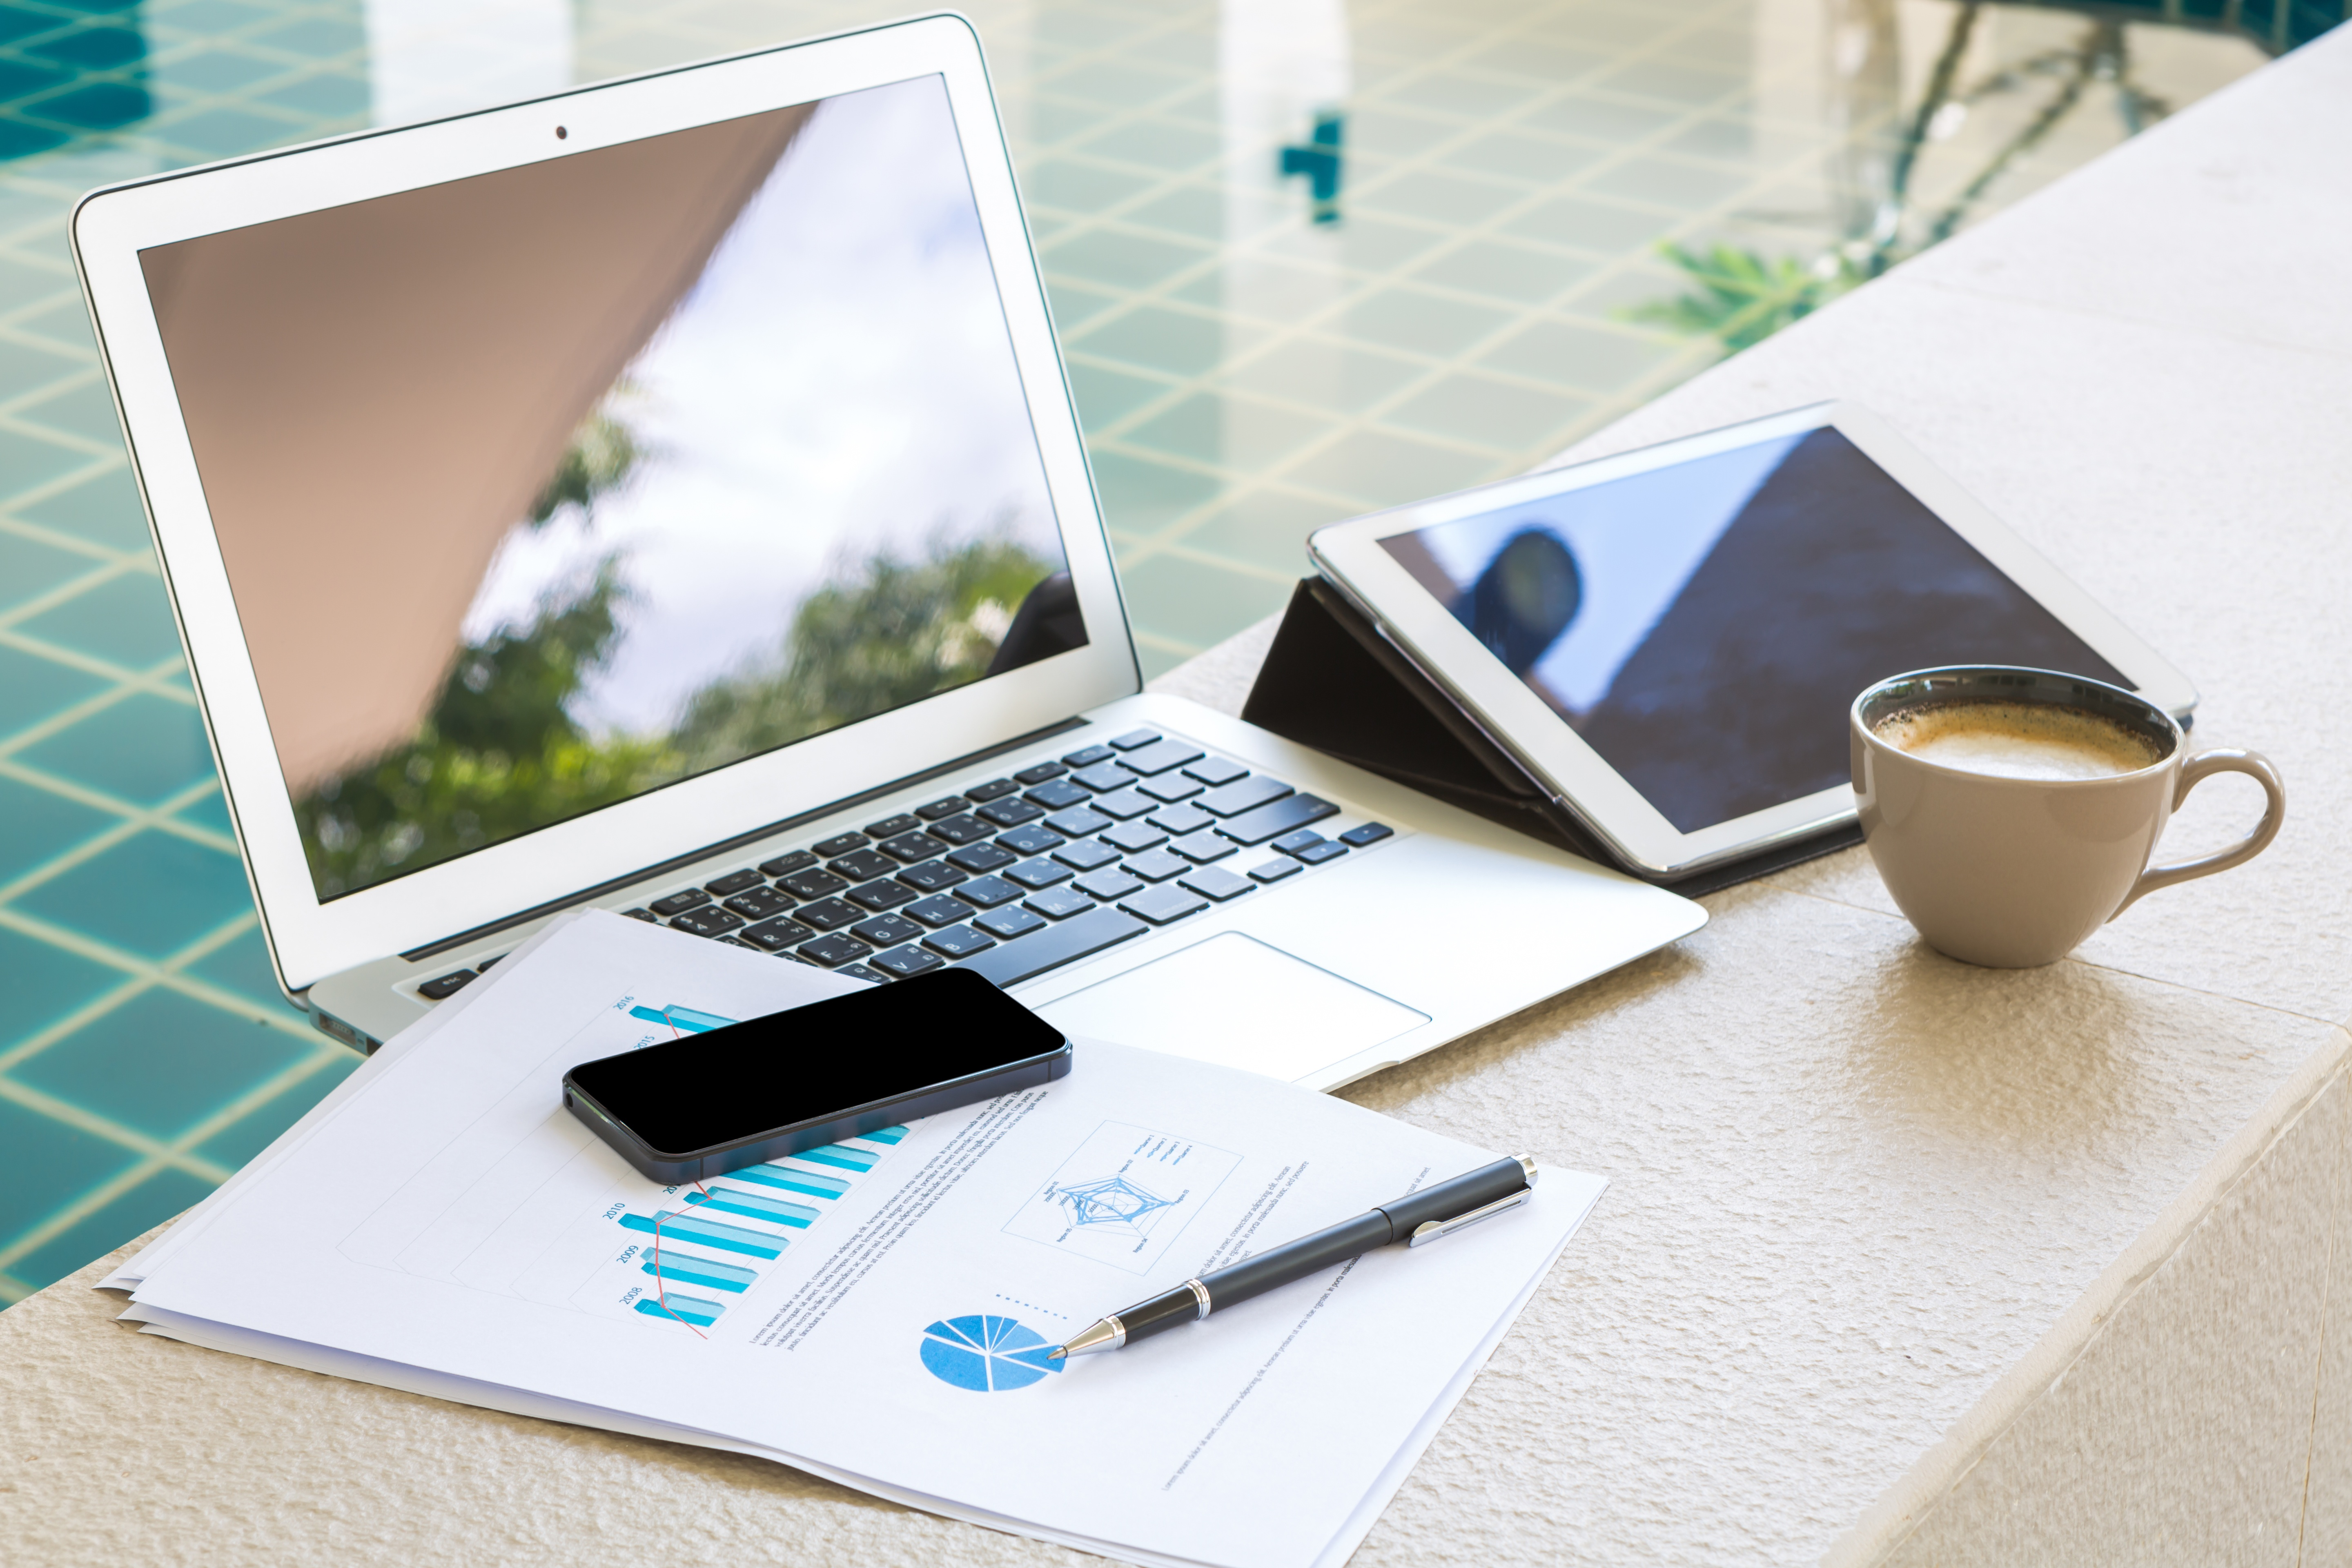 Meeting Sales Goals: Time to Evaluate Your Mid-Year Progress